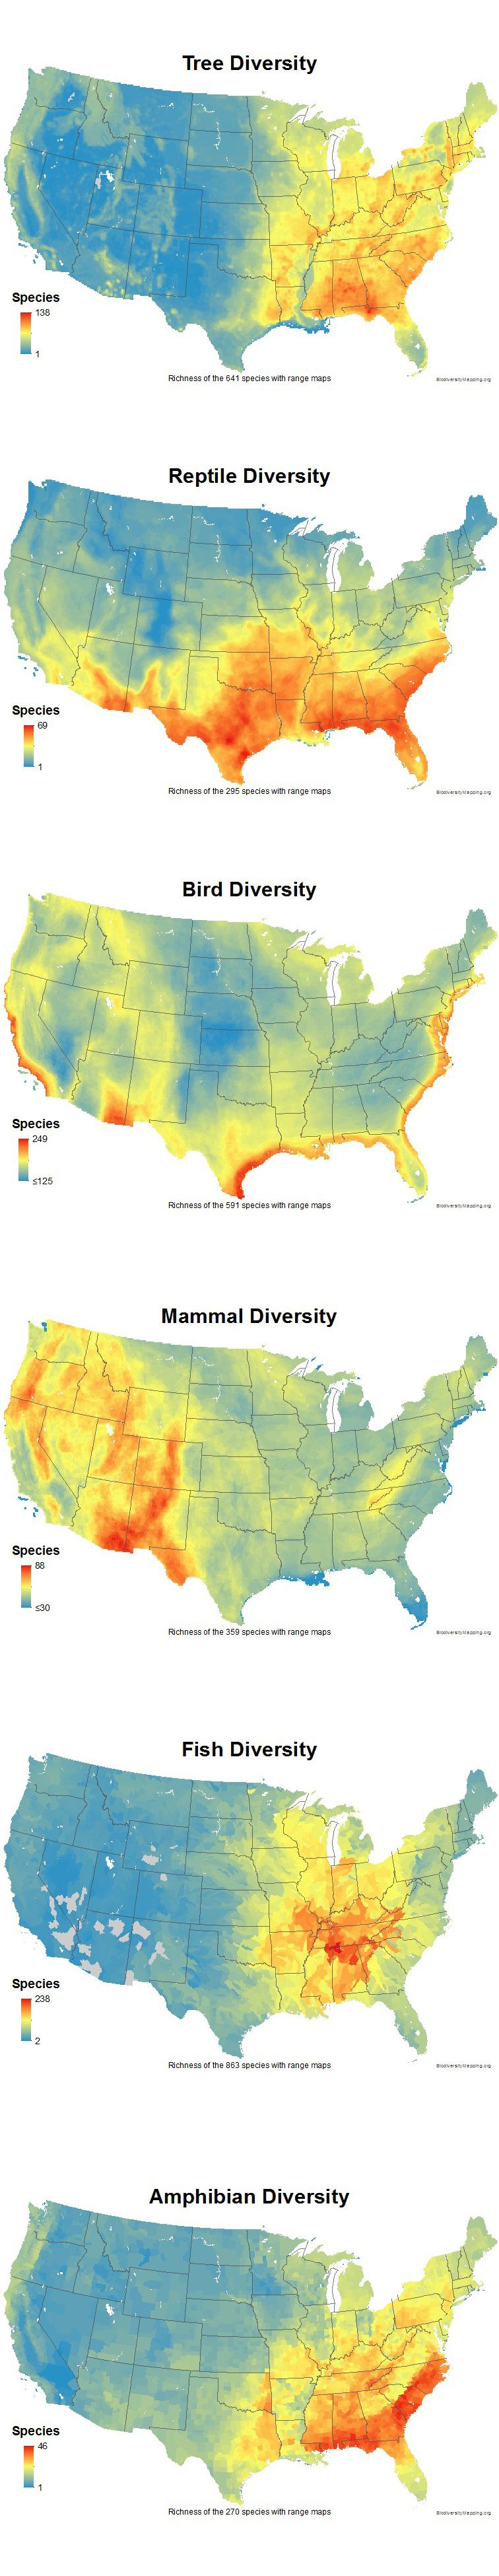 Biodiversity In Contiguous United States Just Cool Pinterest - Amphibian us map